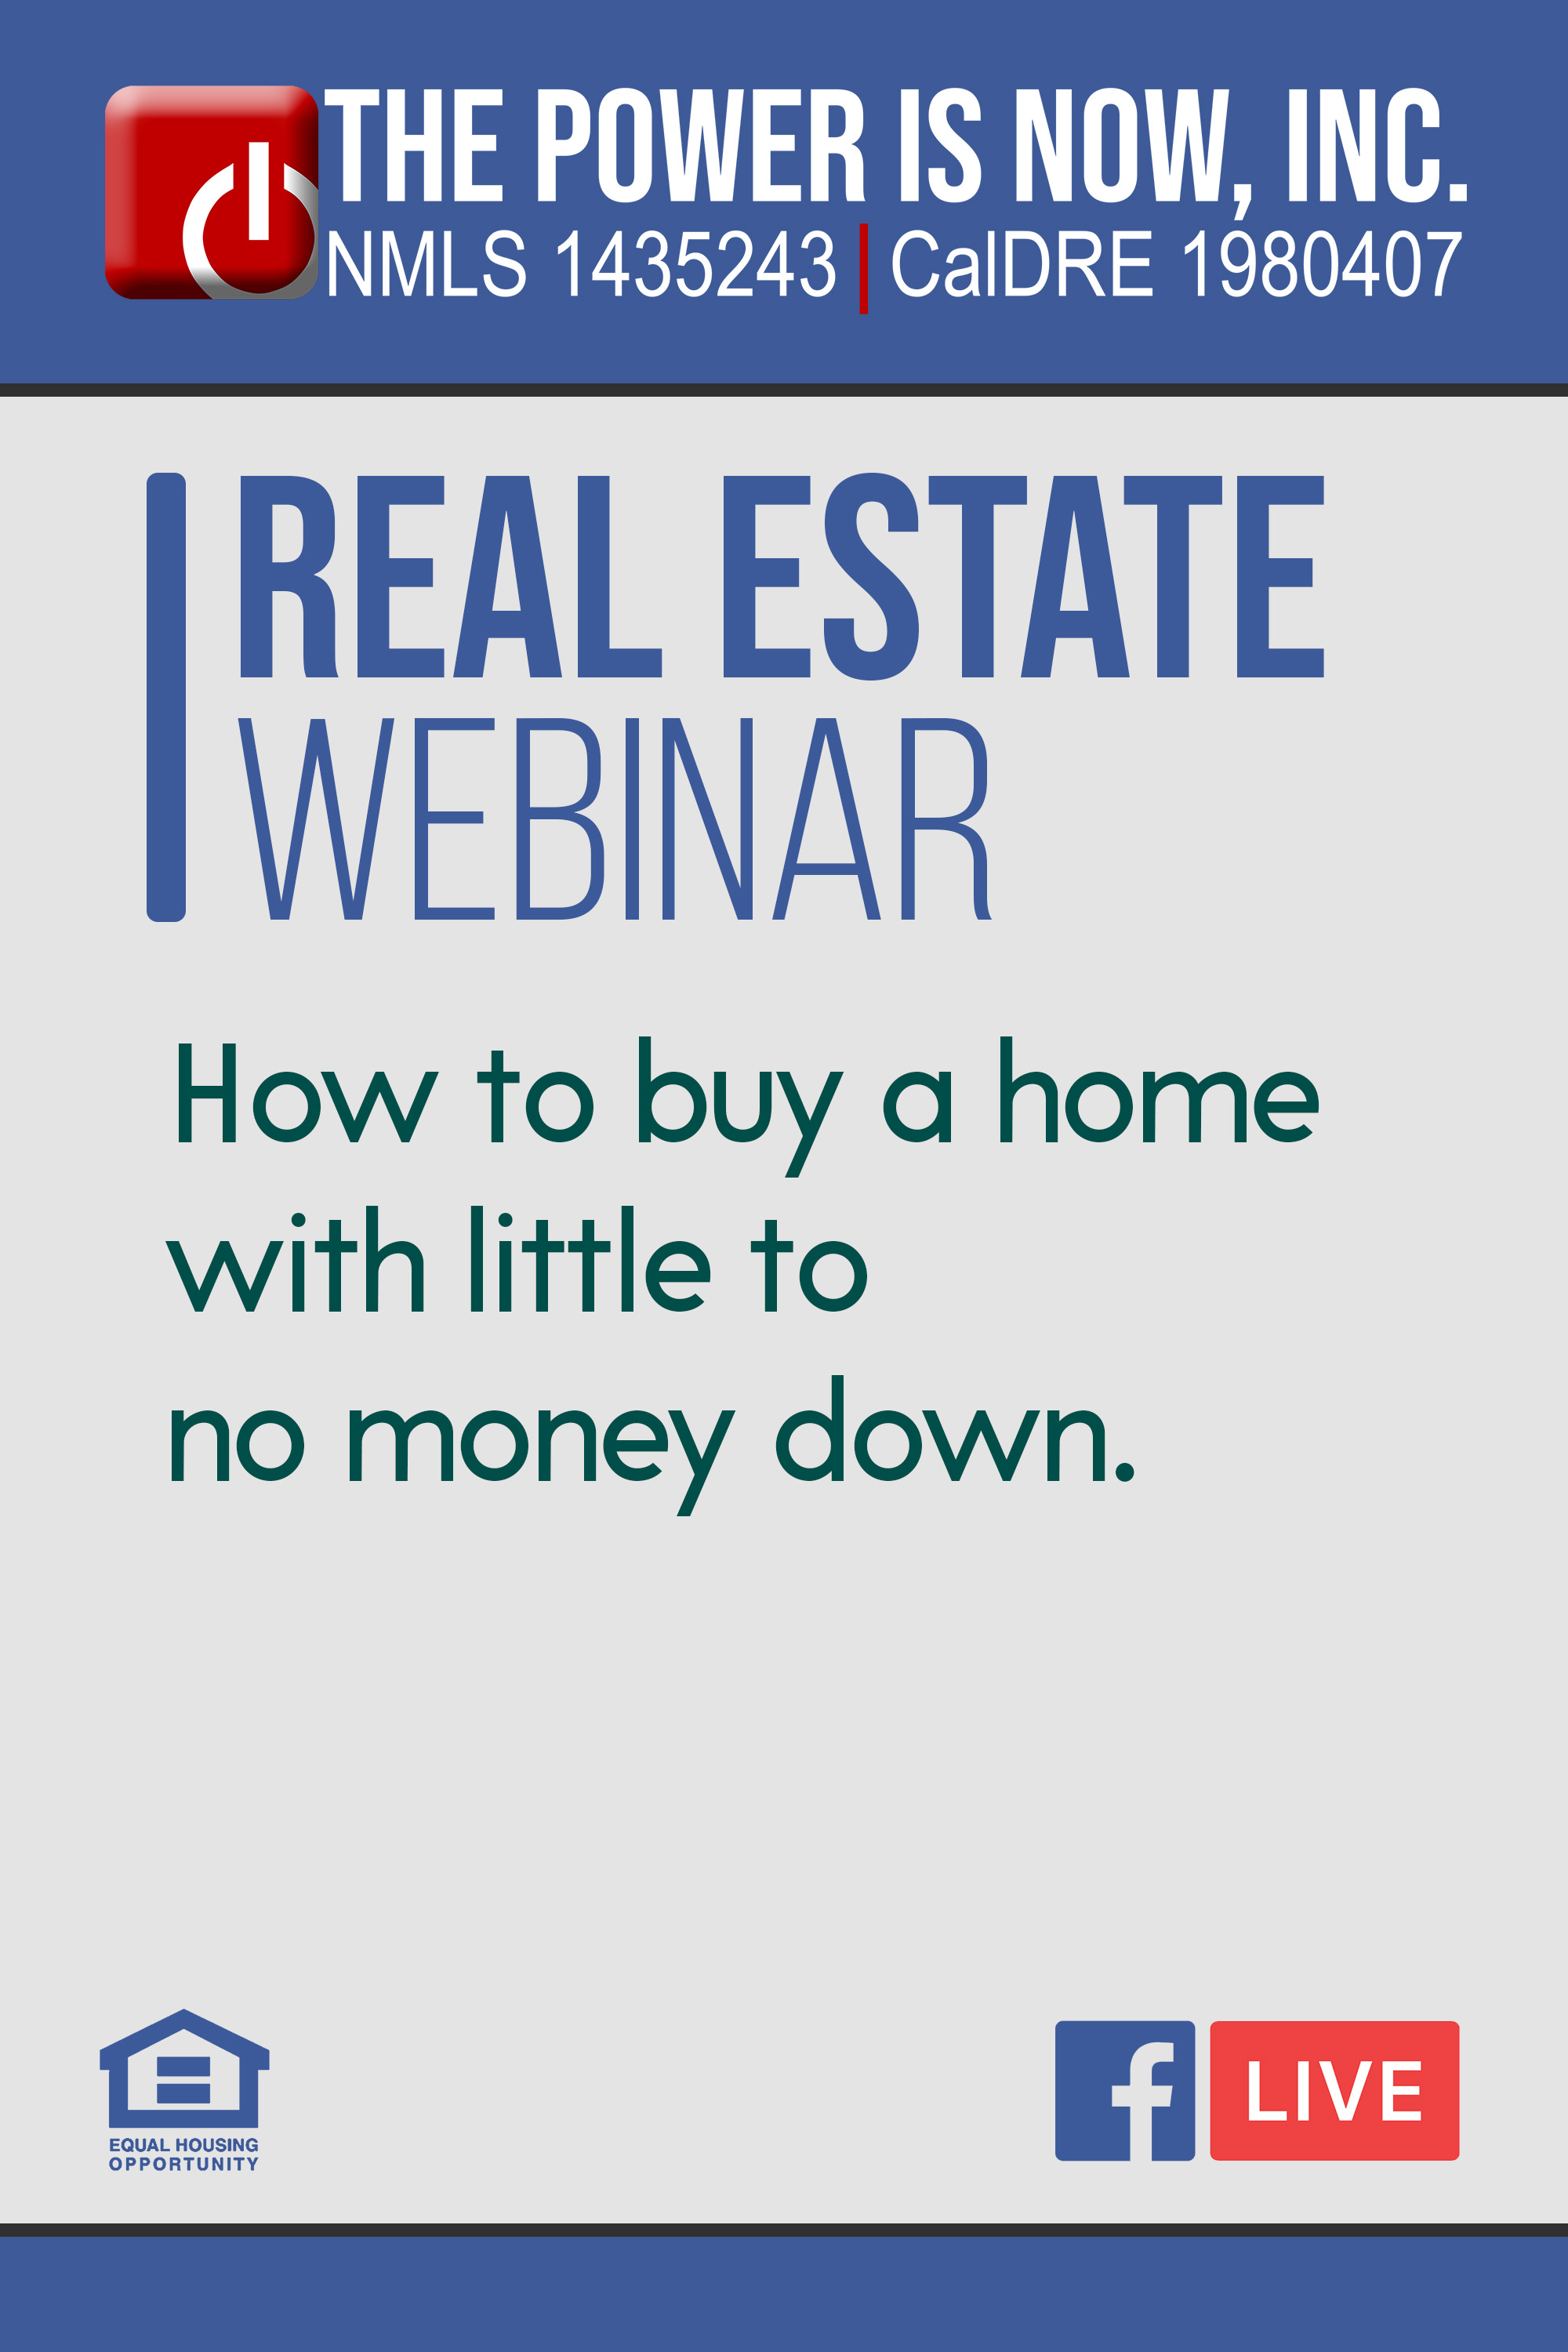 How to buy a home with little to no money down